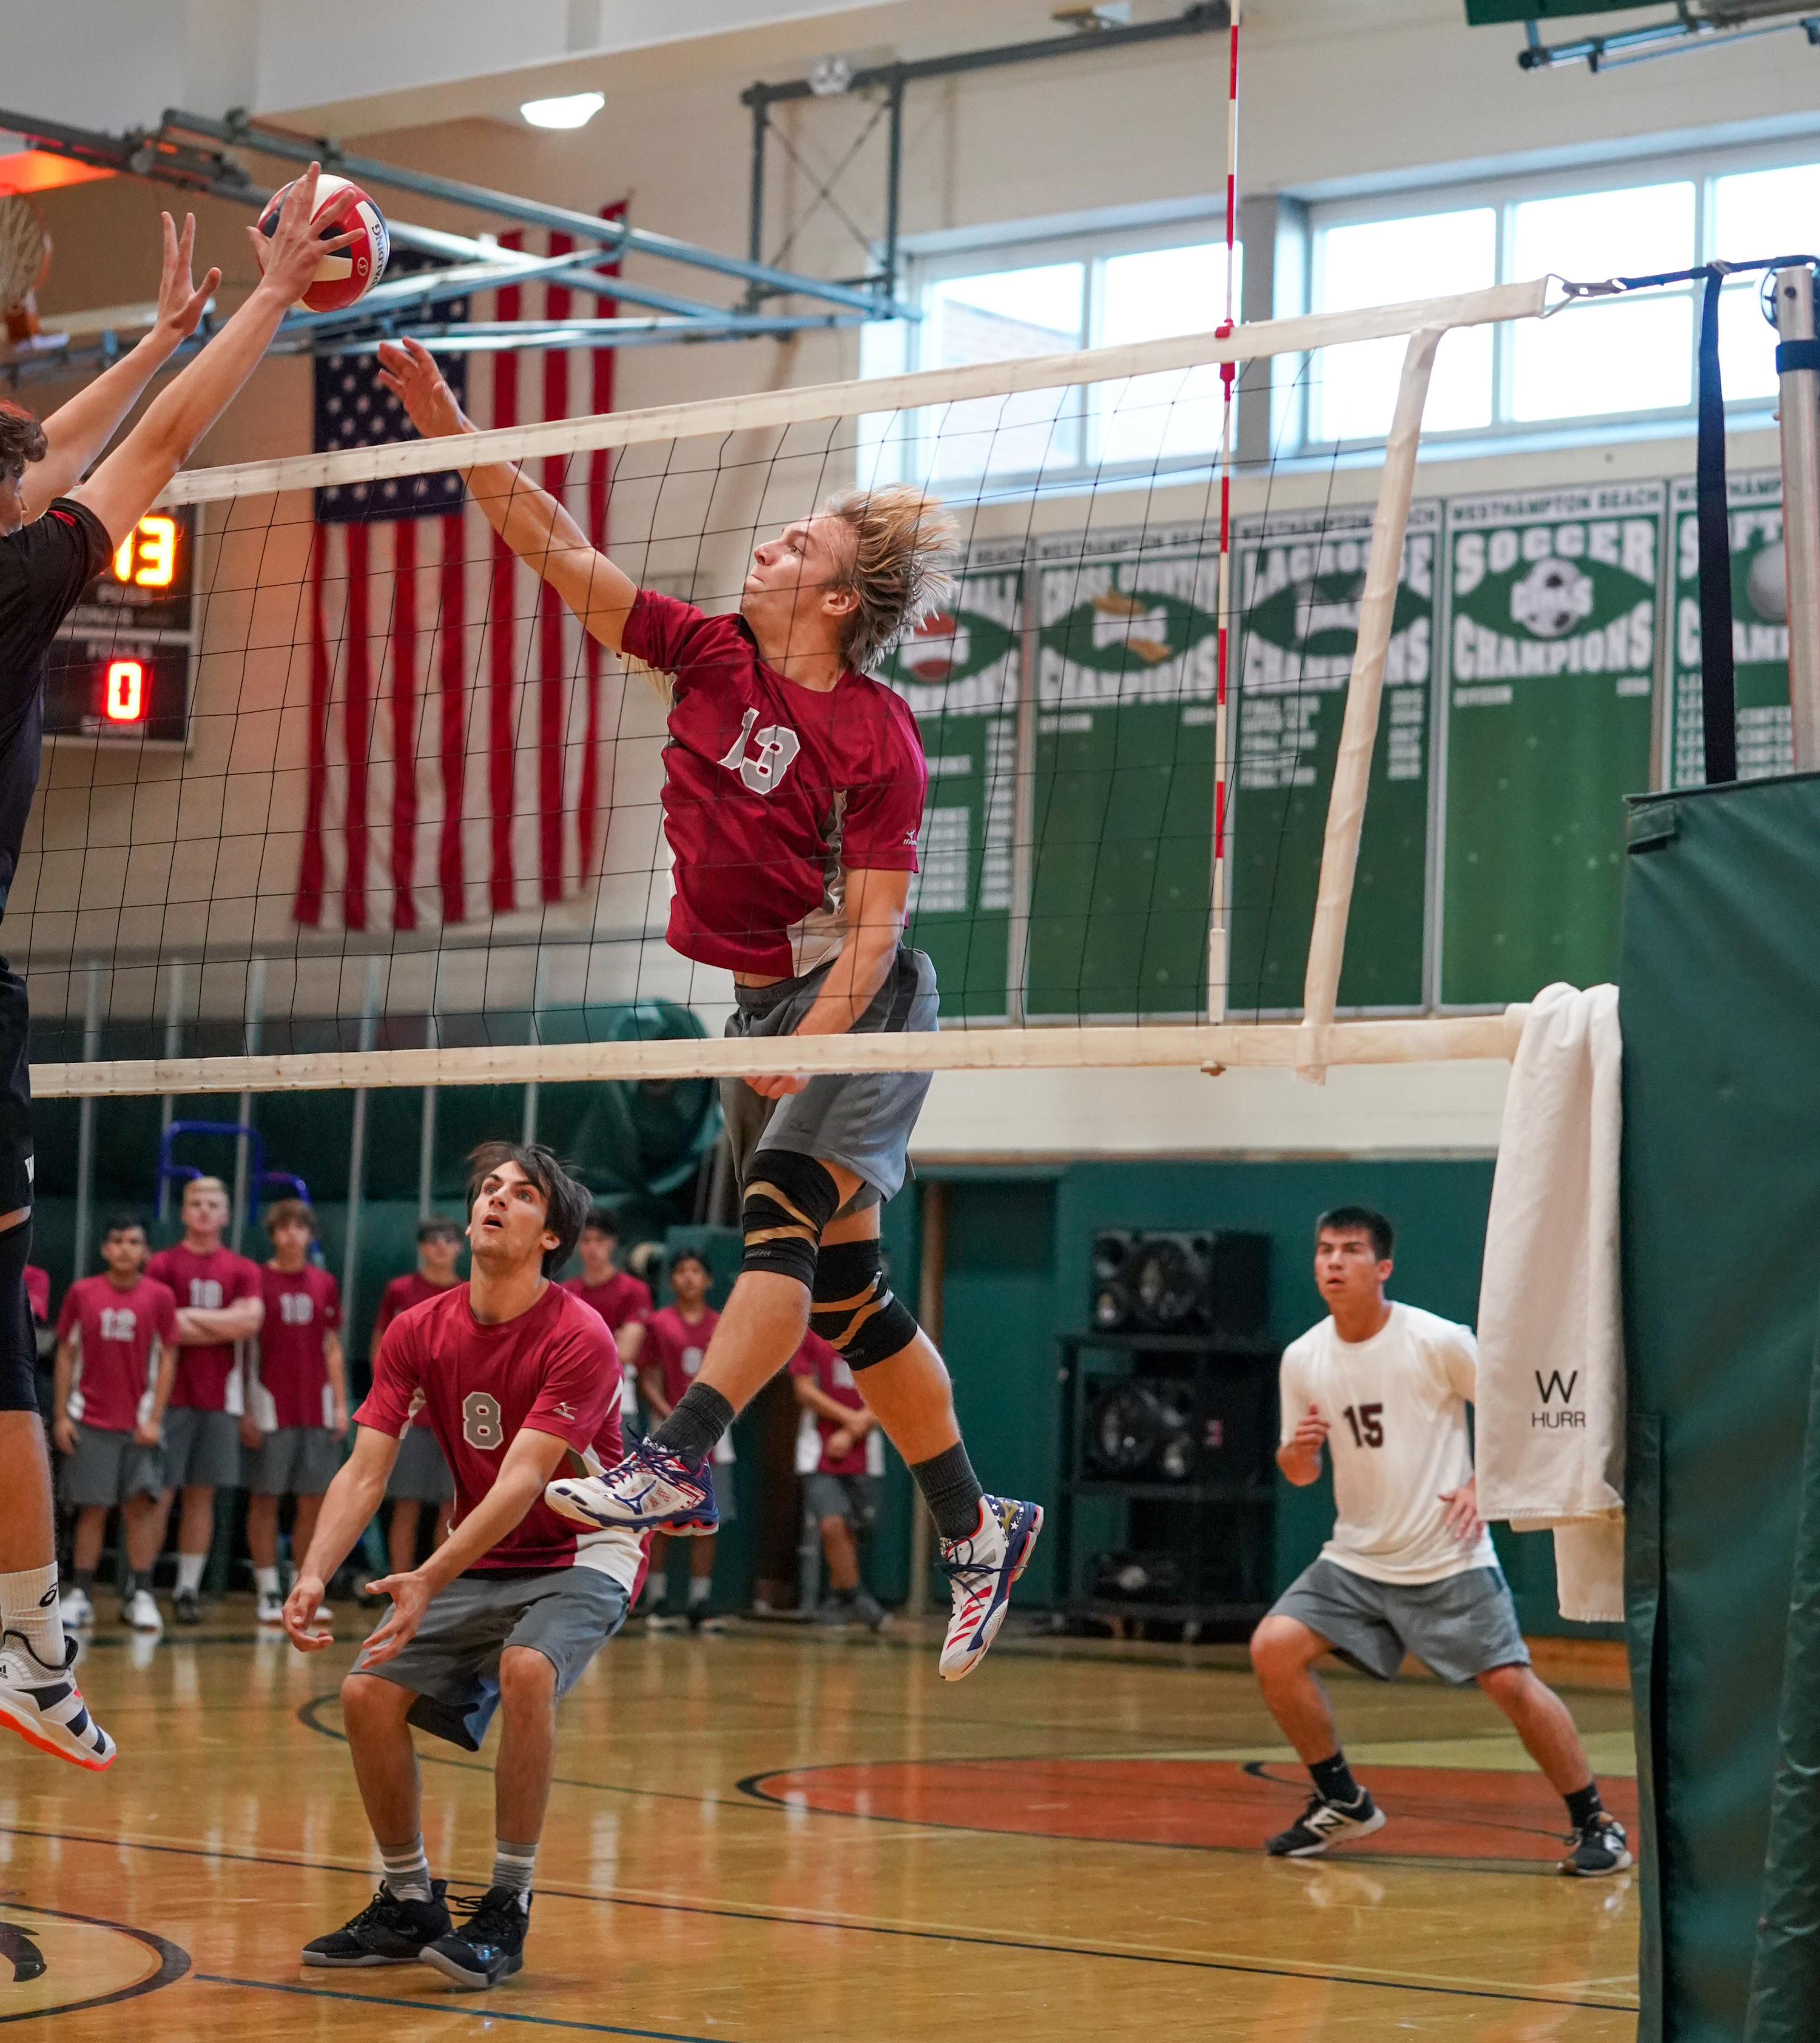 East Hampton junior Luc Campbell tries to get the ball over a Westhampton Beach block.